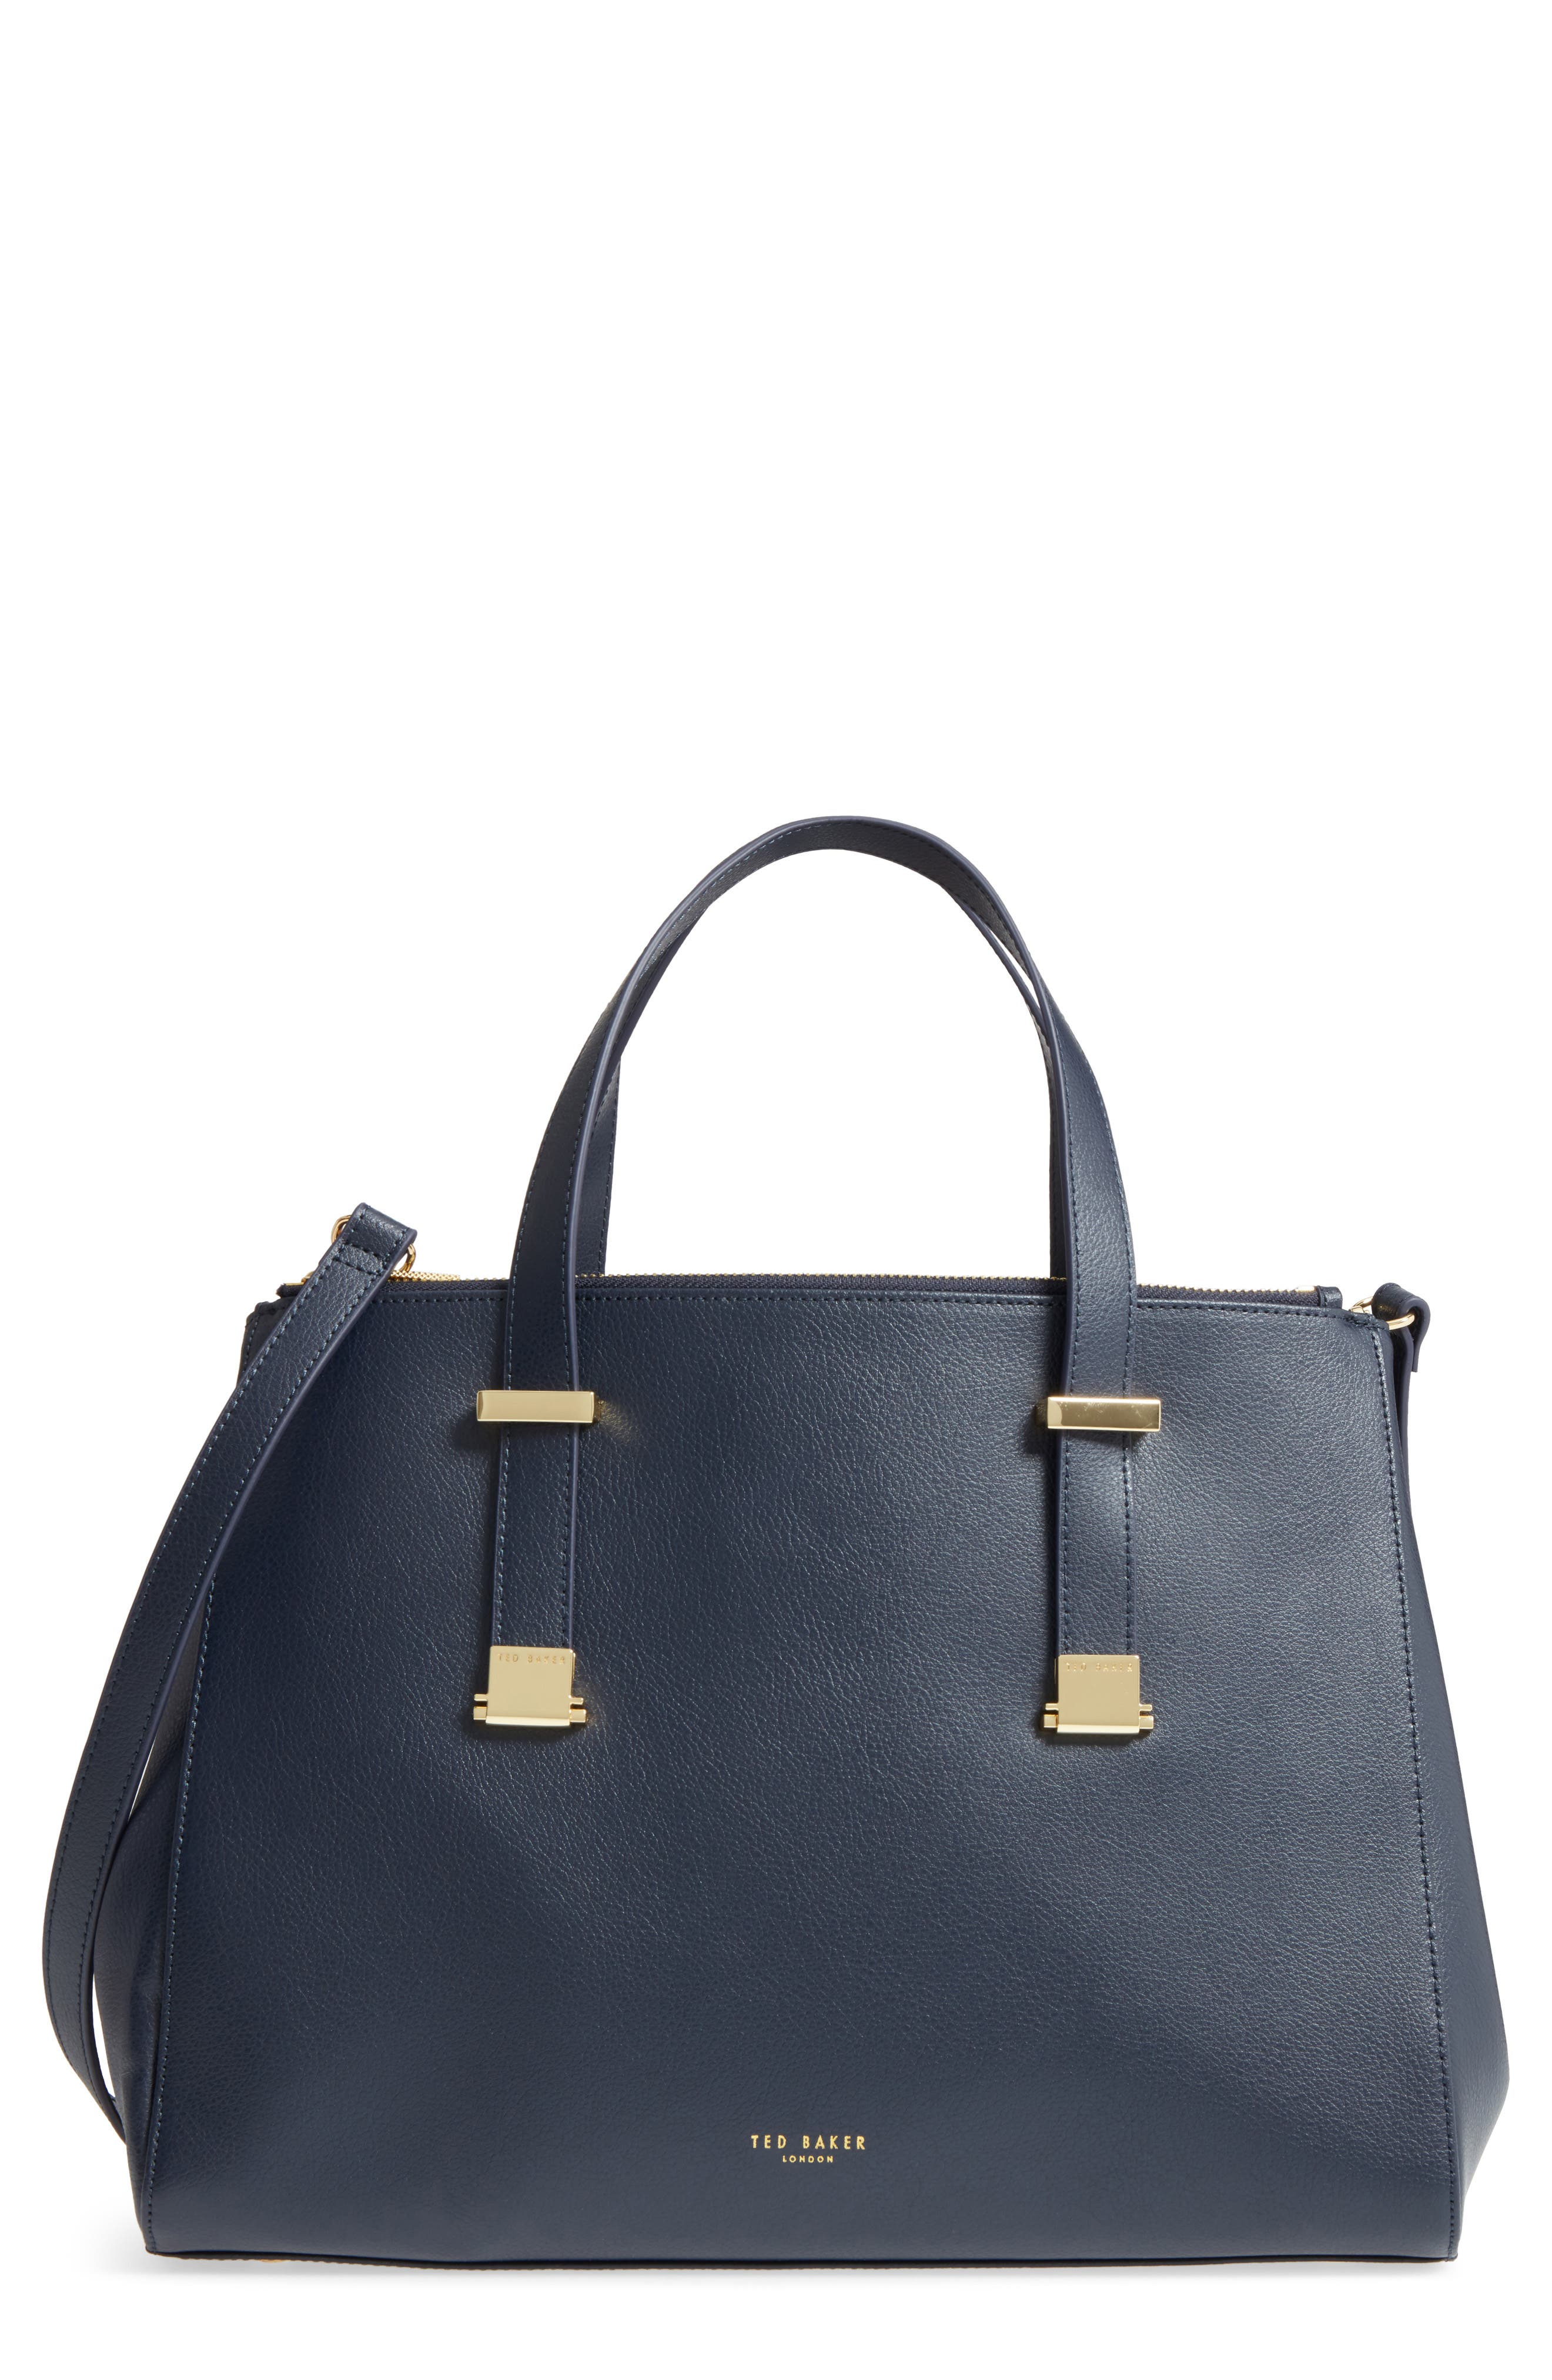 Alternate Image 1 Selected - Ted Baker London Large Alunaa Convertible Leather Tote